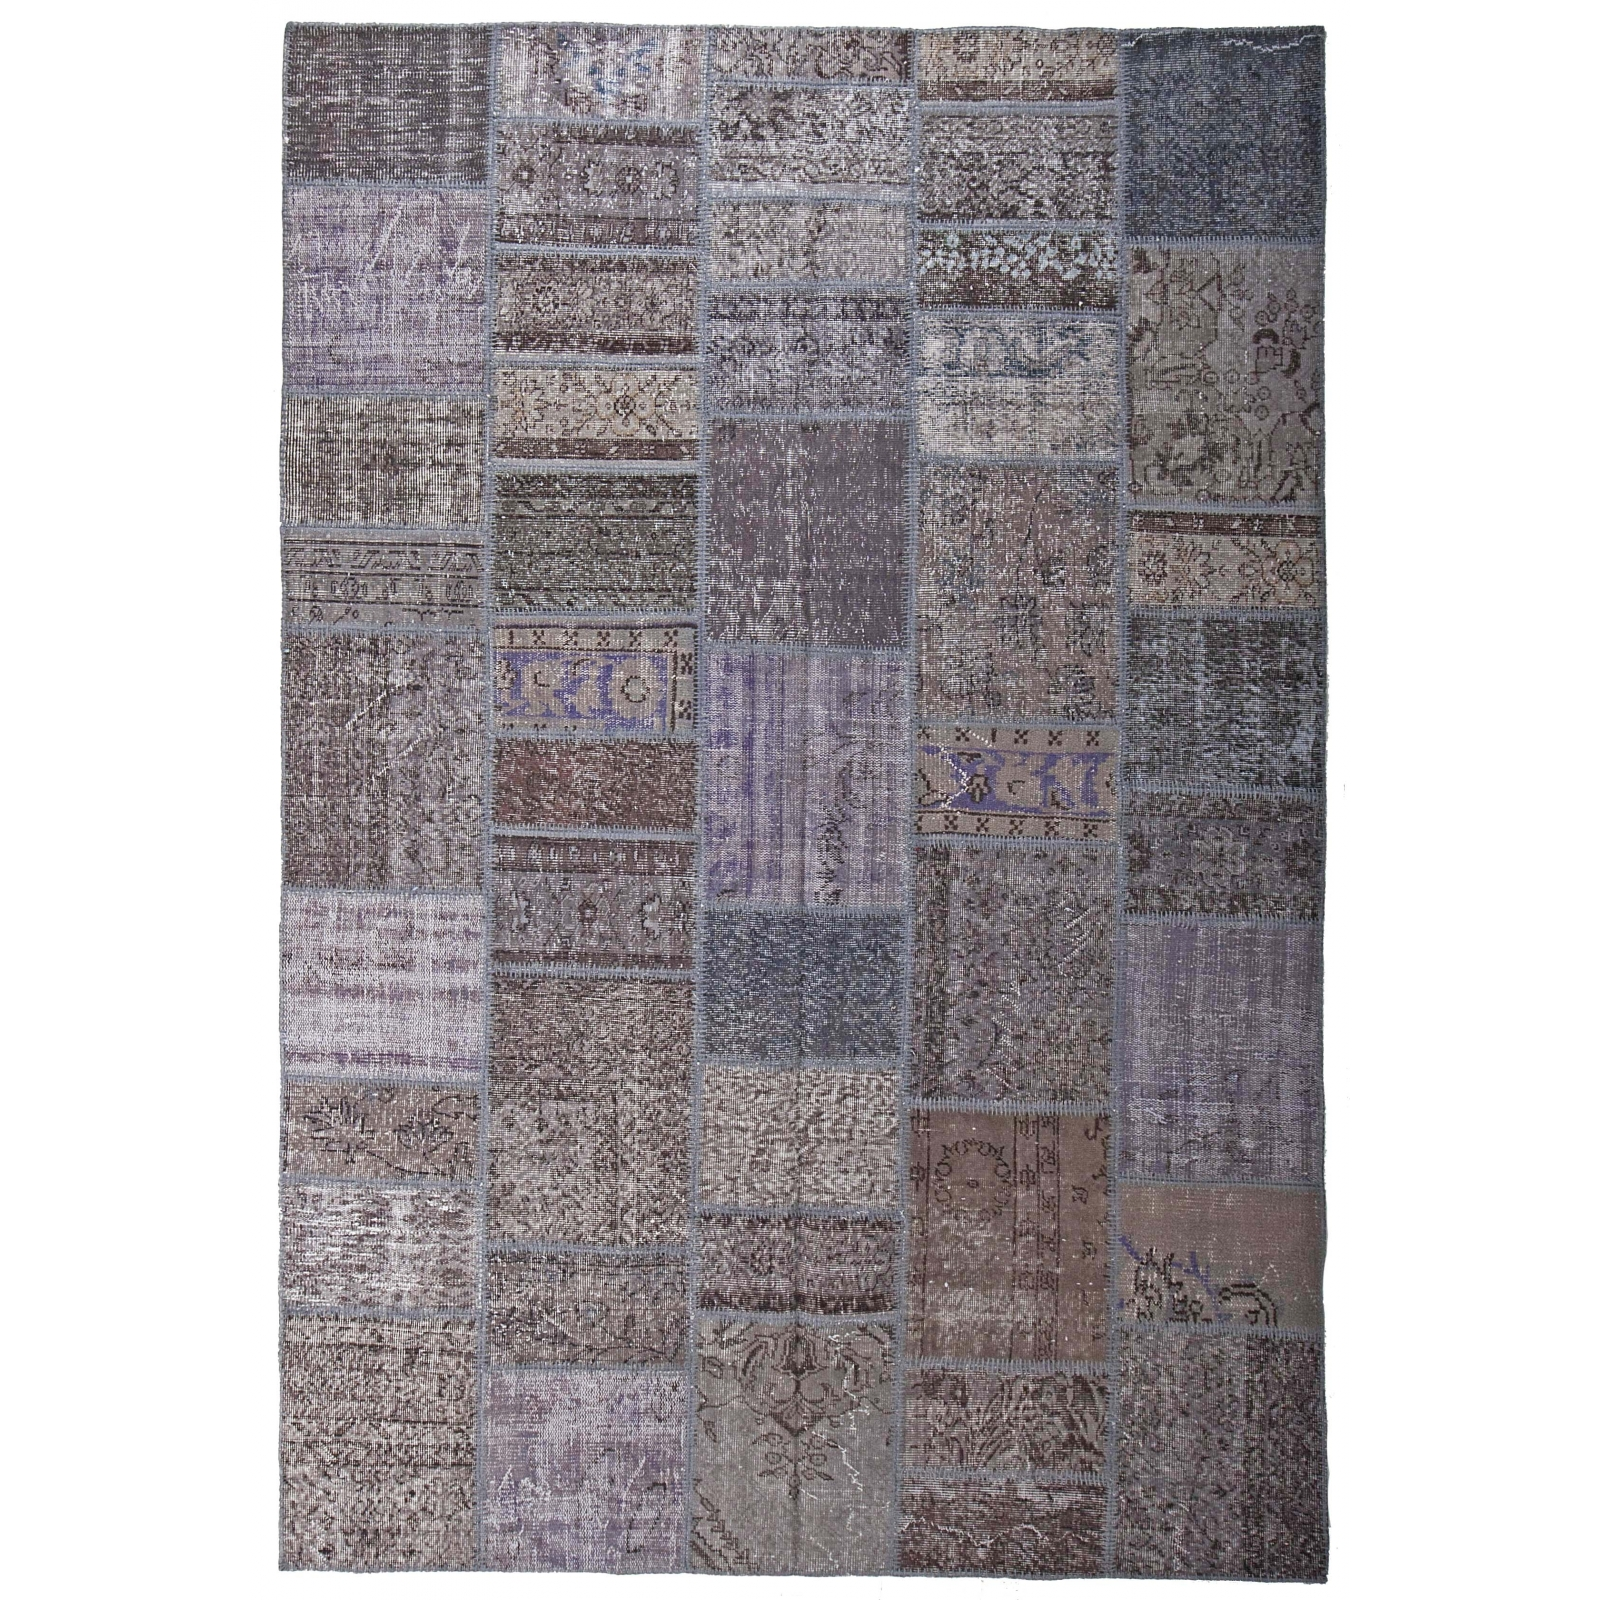 gris vintage tapis de patchwork 200x300cm. Black Bedroom Furniture Sets. Home Design Ideas